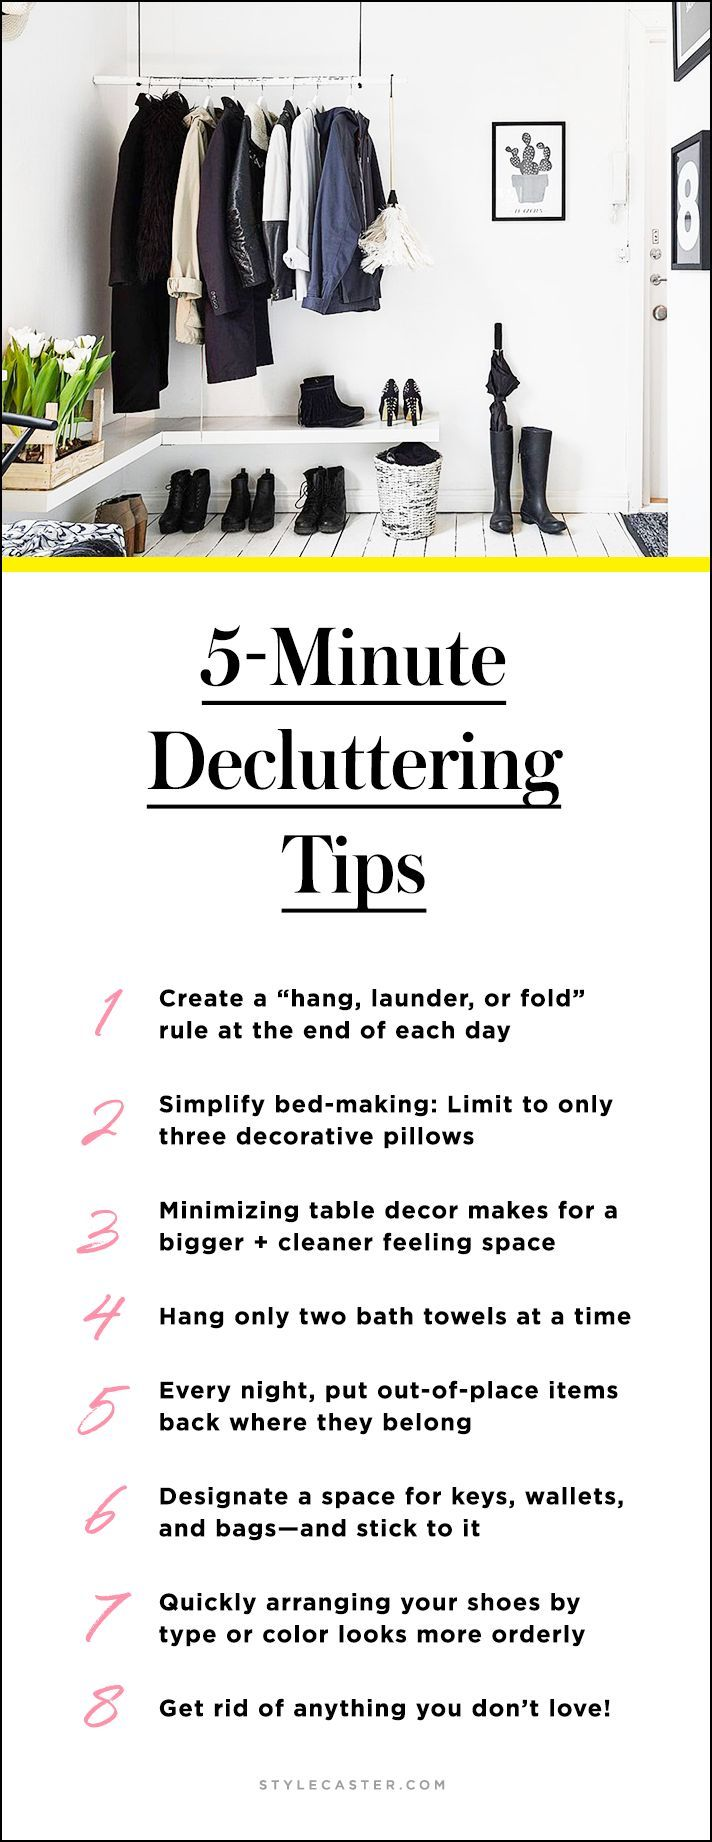 Cheat Sheet: 5-Minute Decluttering Tips for a Clutter-Free Home | How to quickly clean + simplify your space—save this handy list as a reminder | /stylecaster/